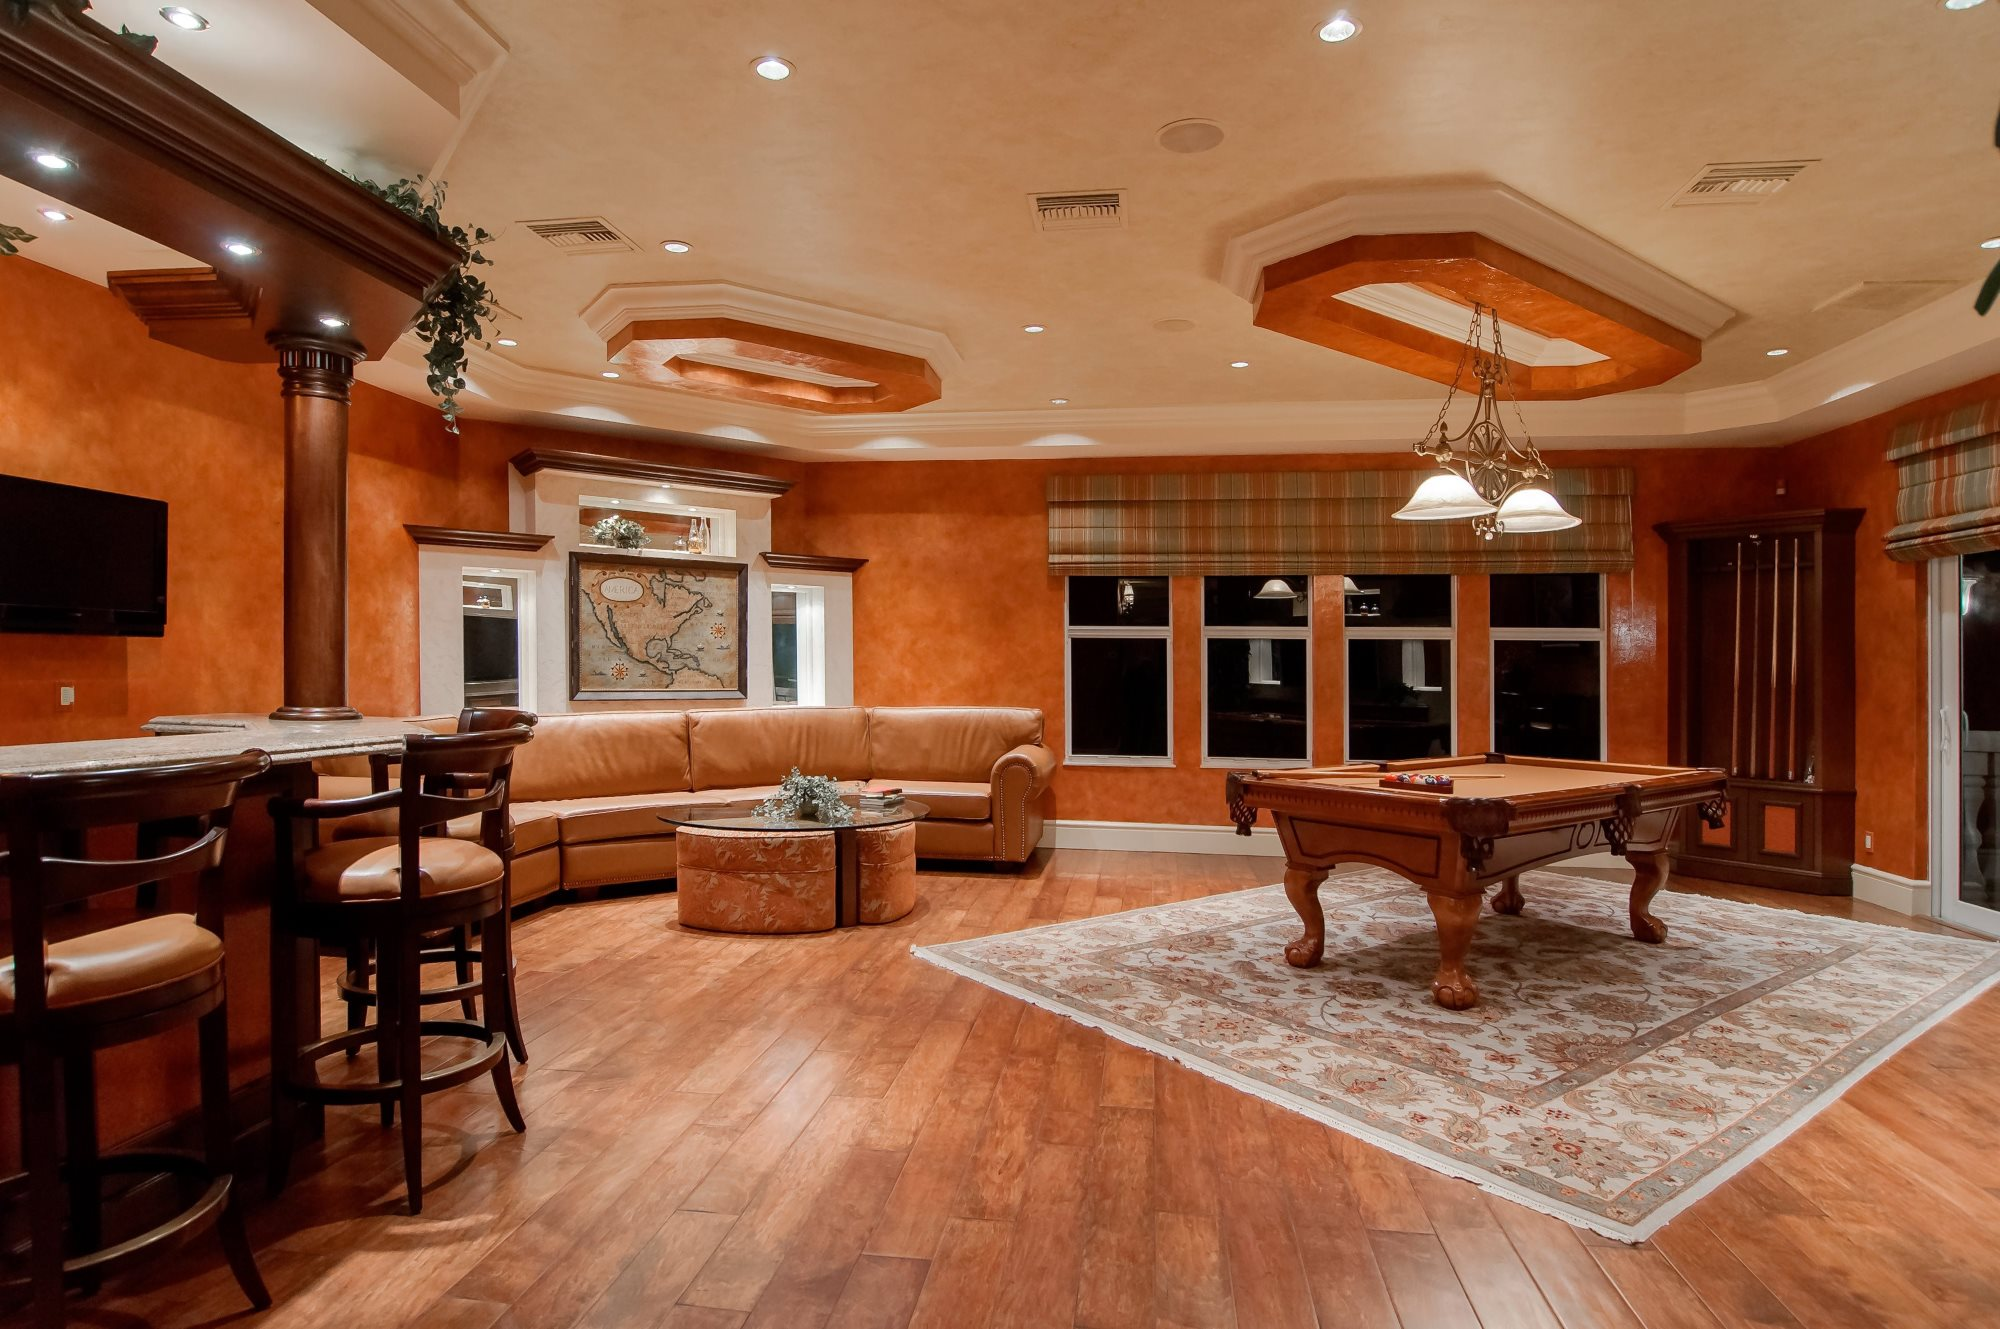 Utahs Hardwood Flooring And Carpet Specialists Workman Flooring - Happy feet flooring utah